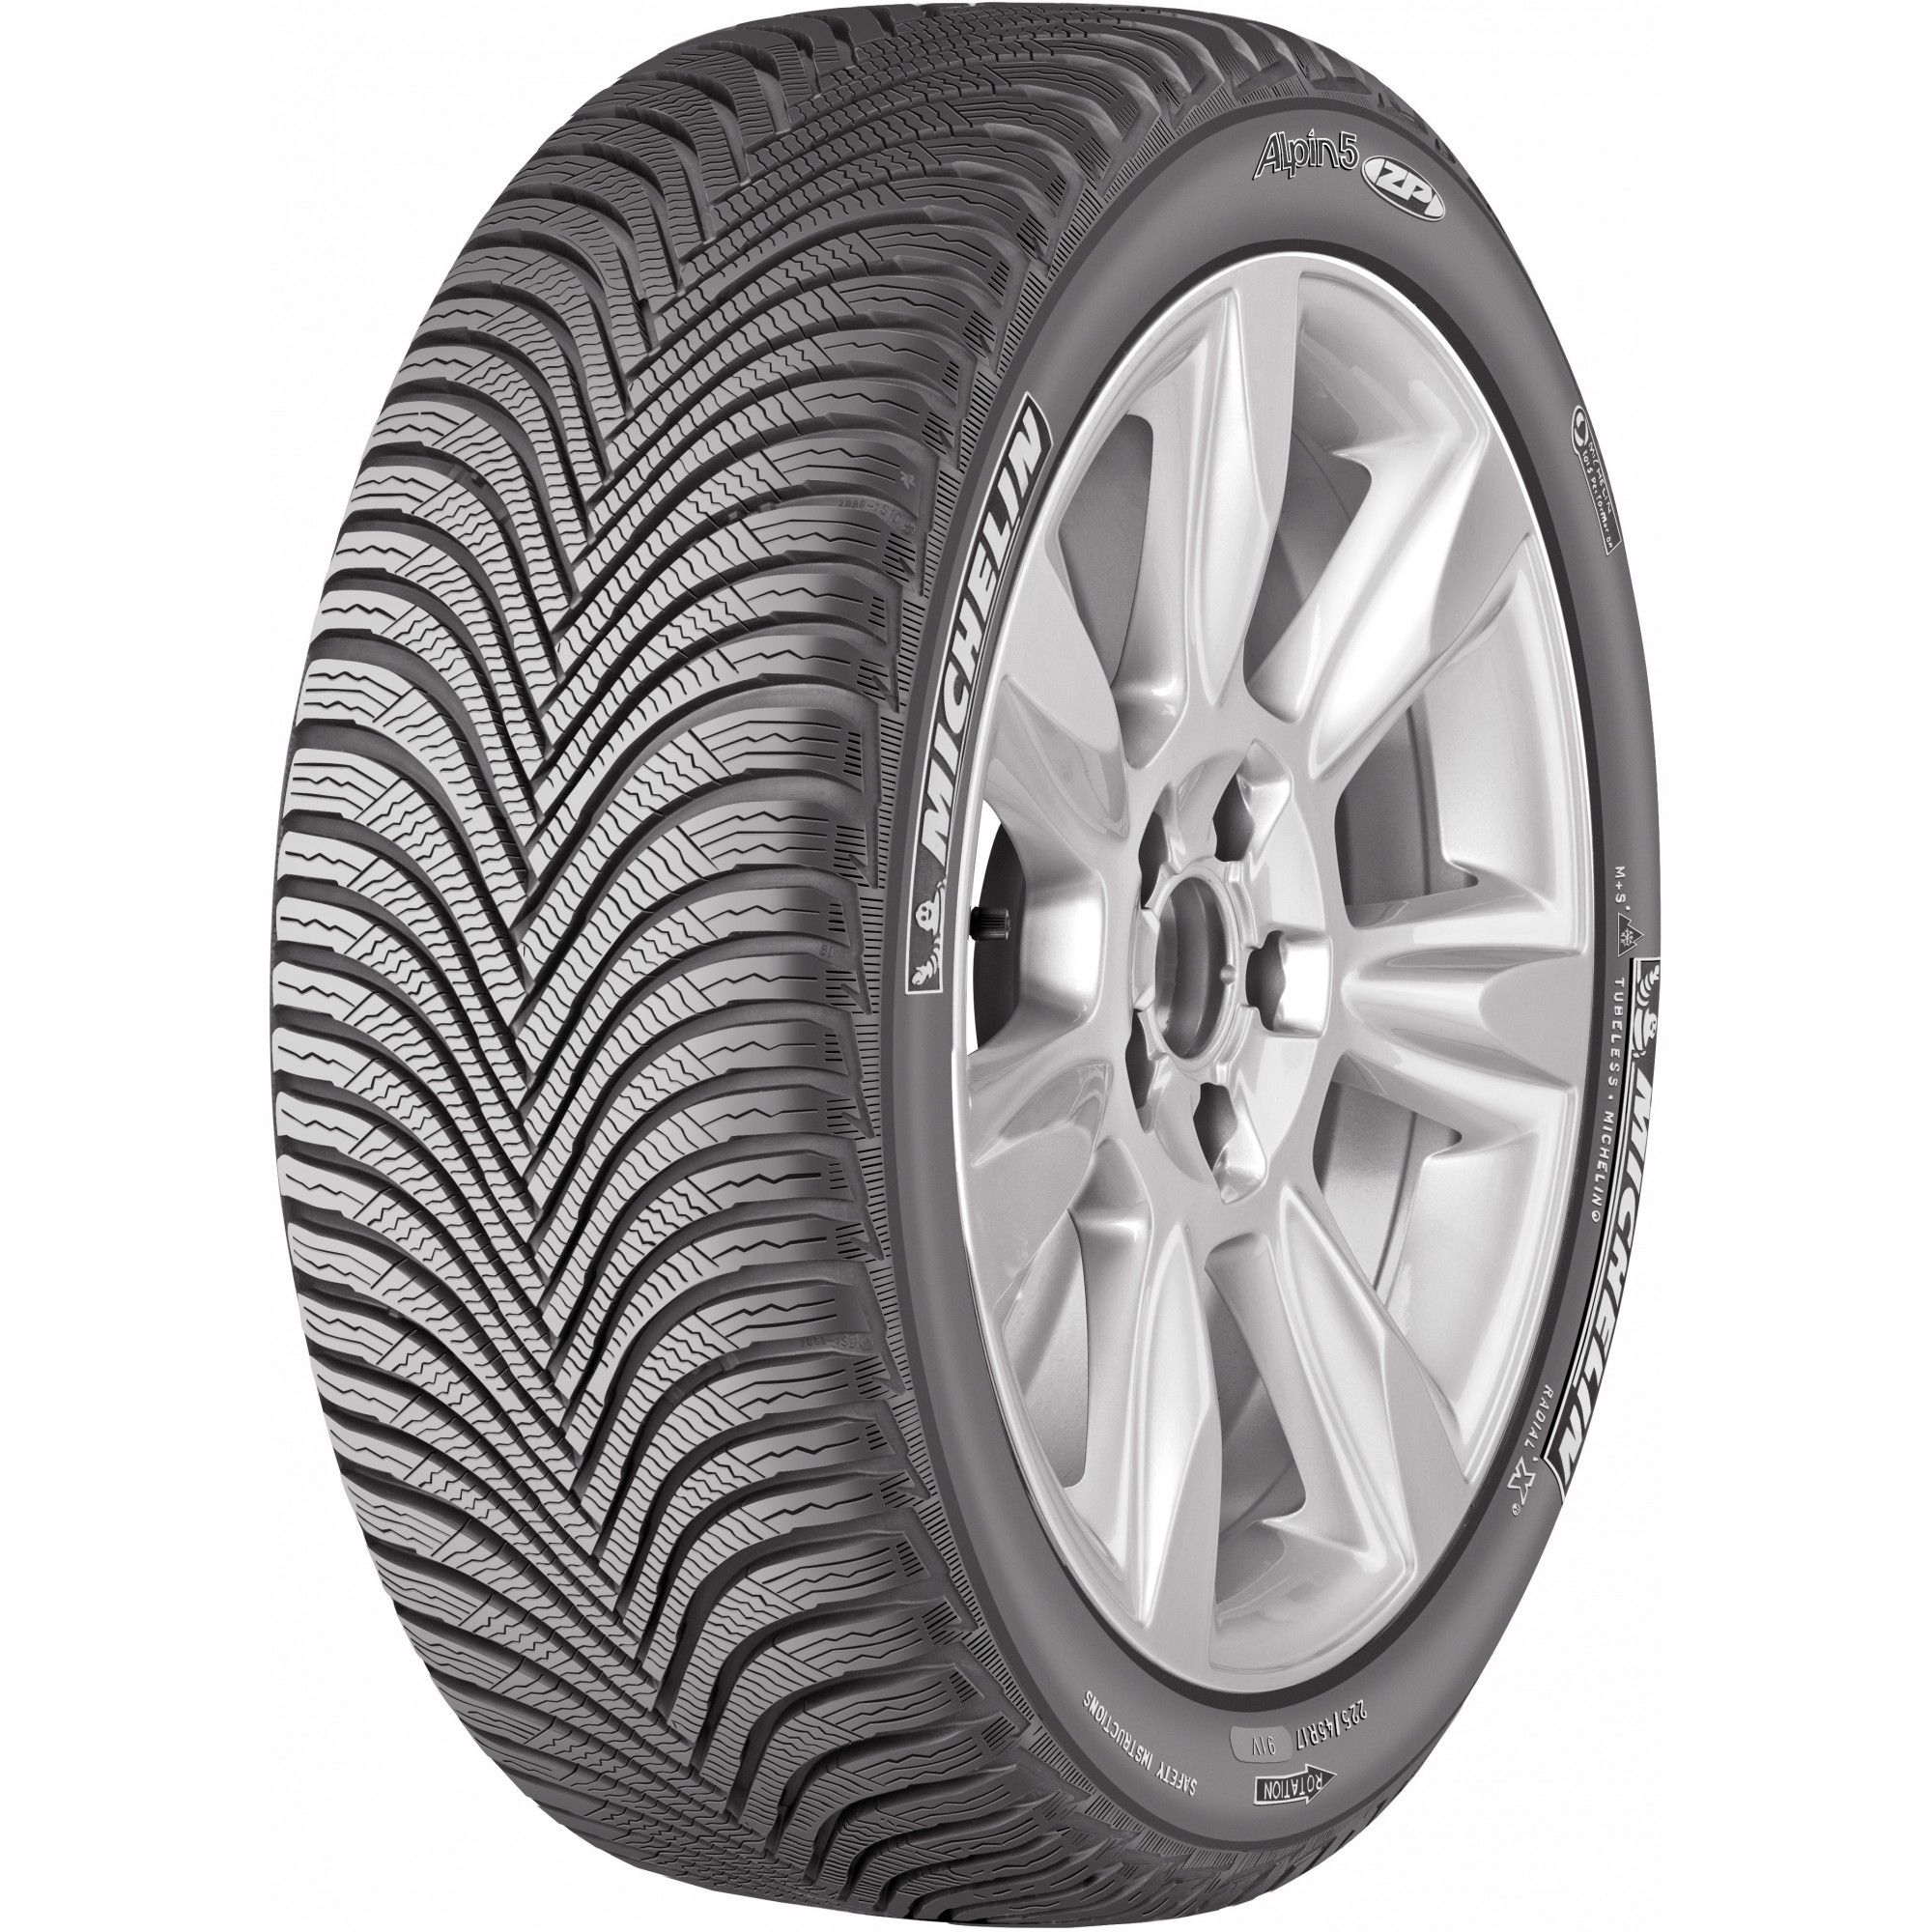 Зимняя шина Michelin Alpin 5 195/50 R16 88H